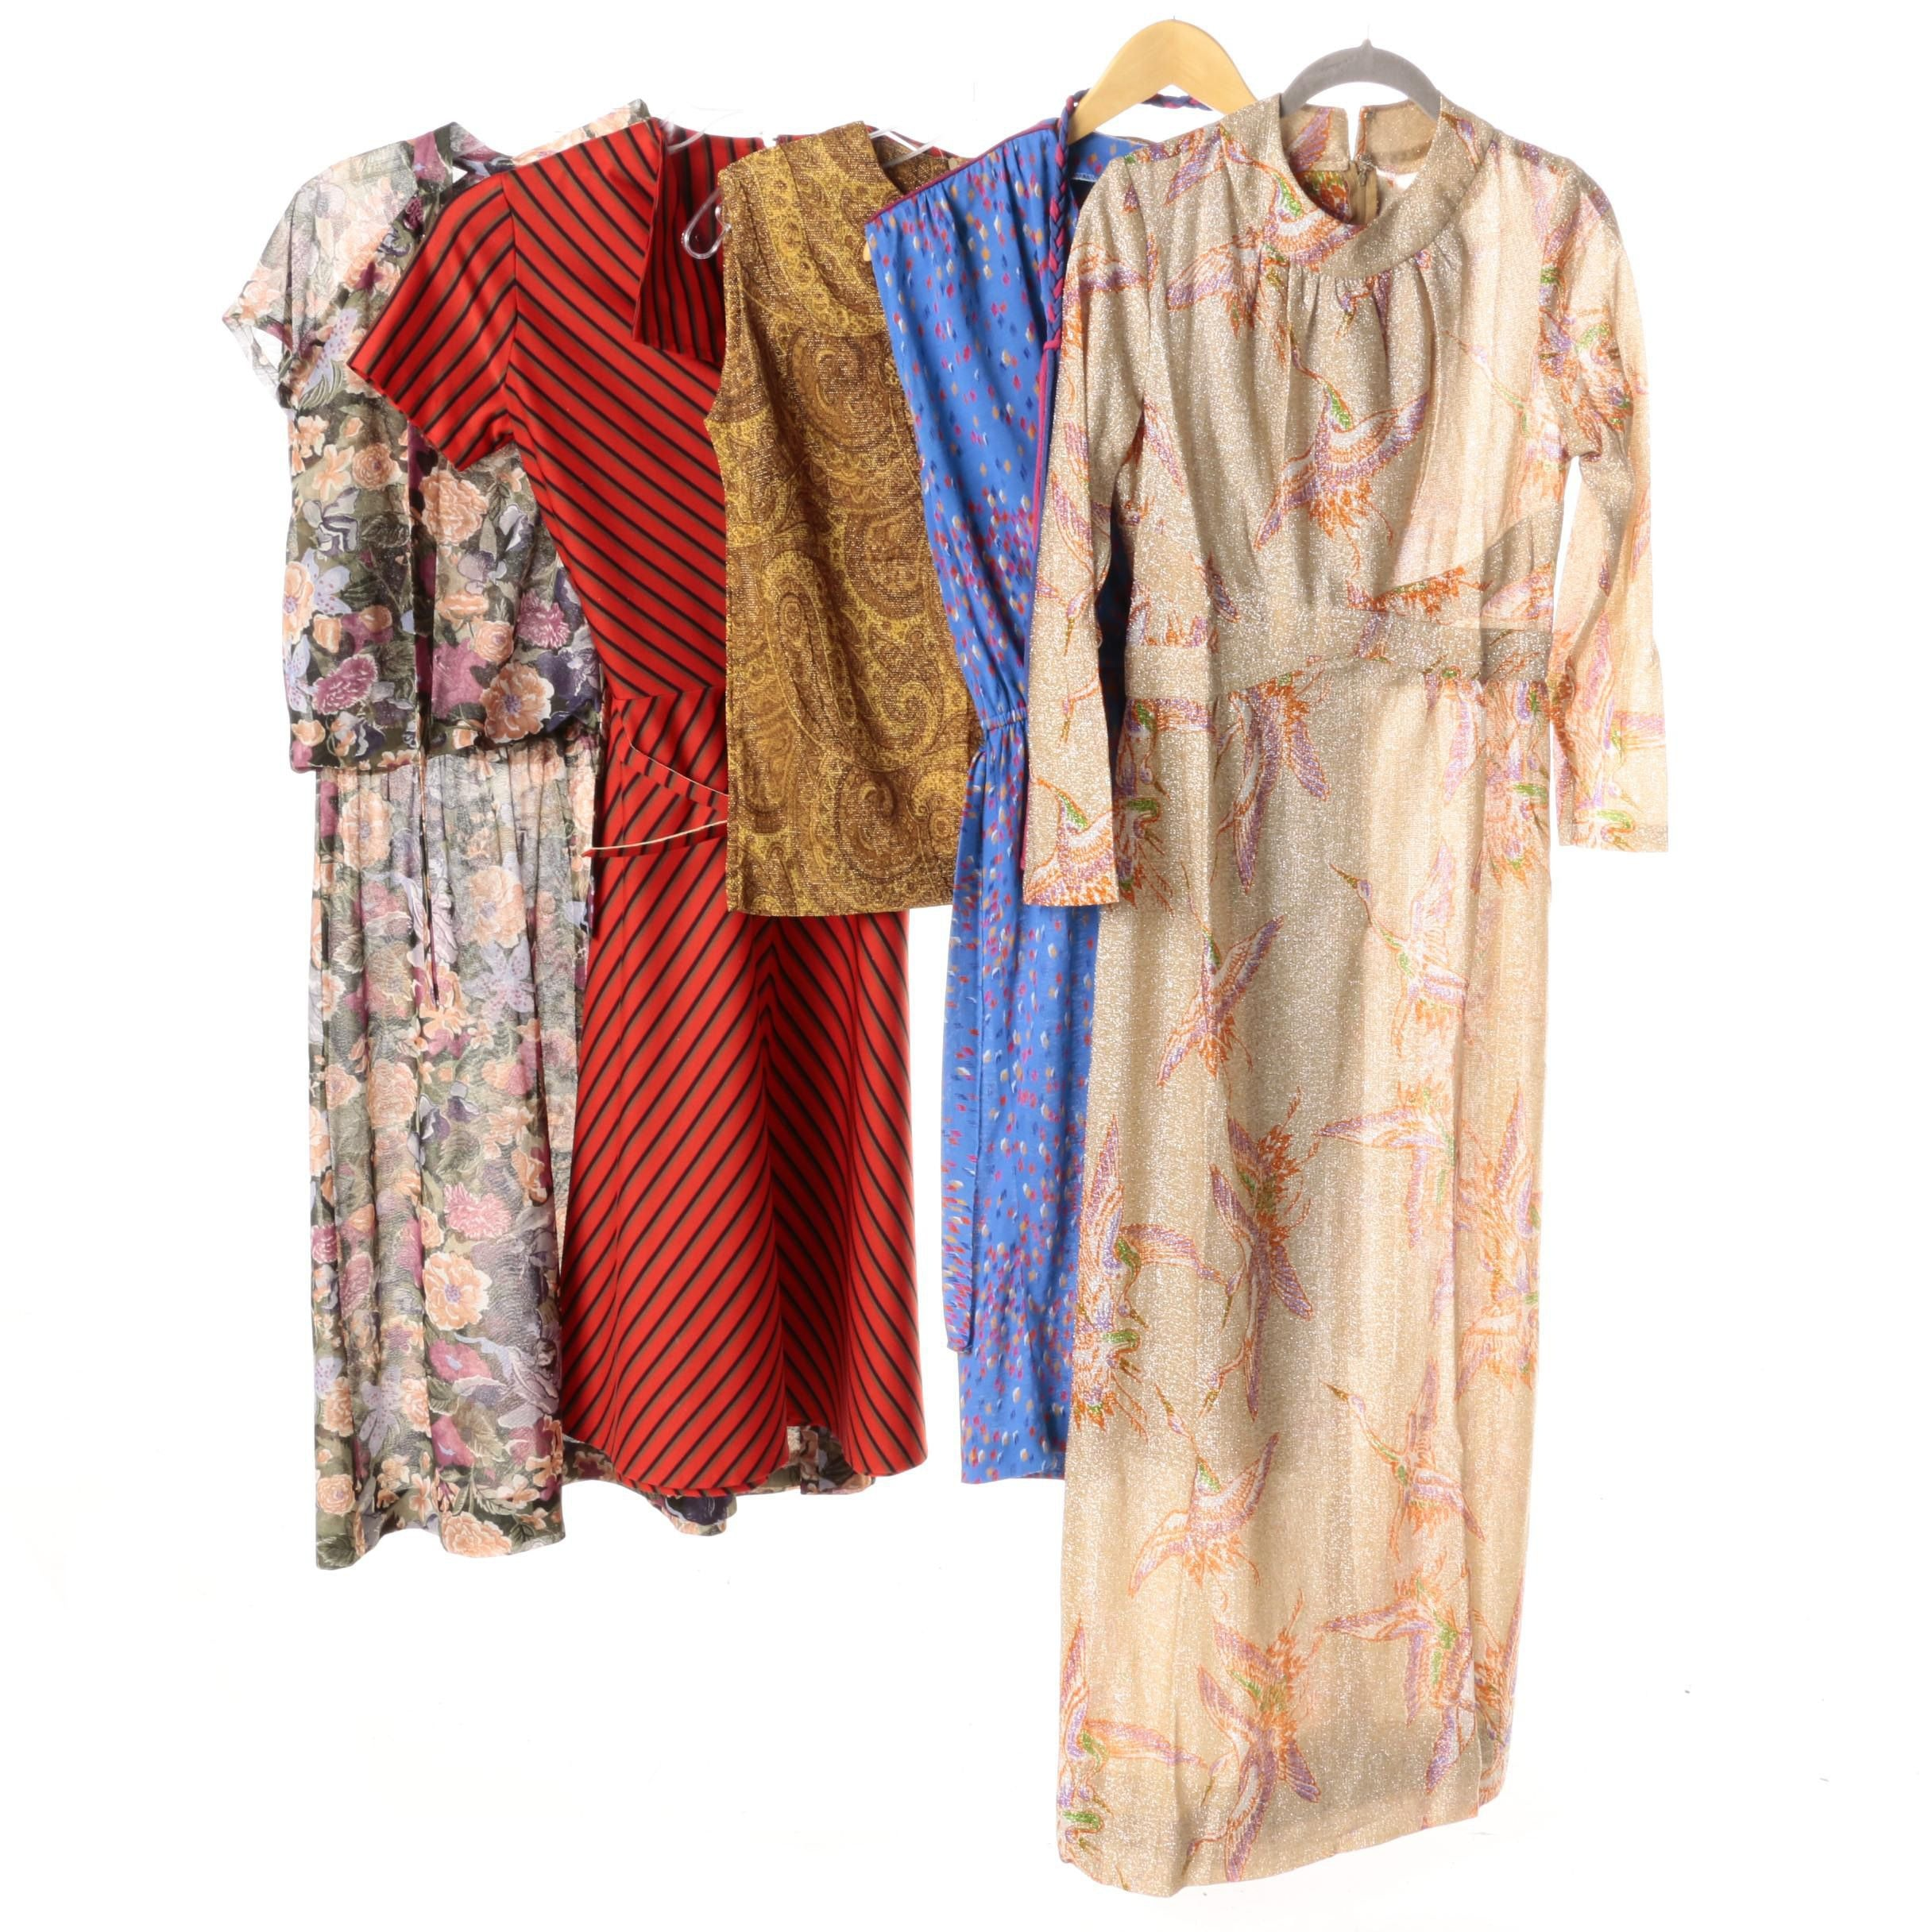 Women's Vintage Dress Collection